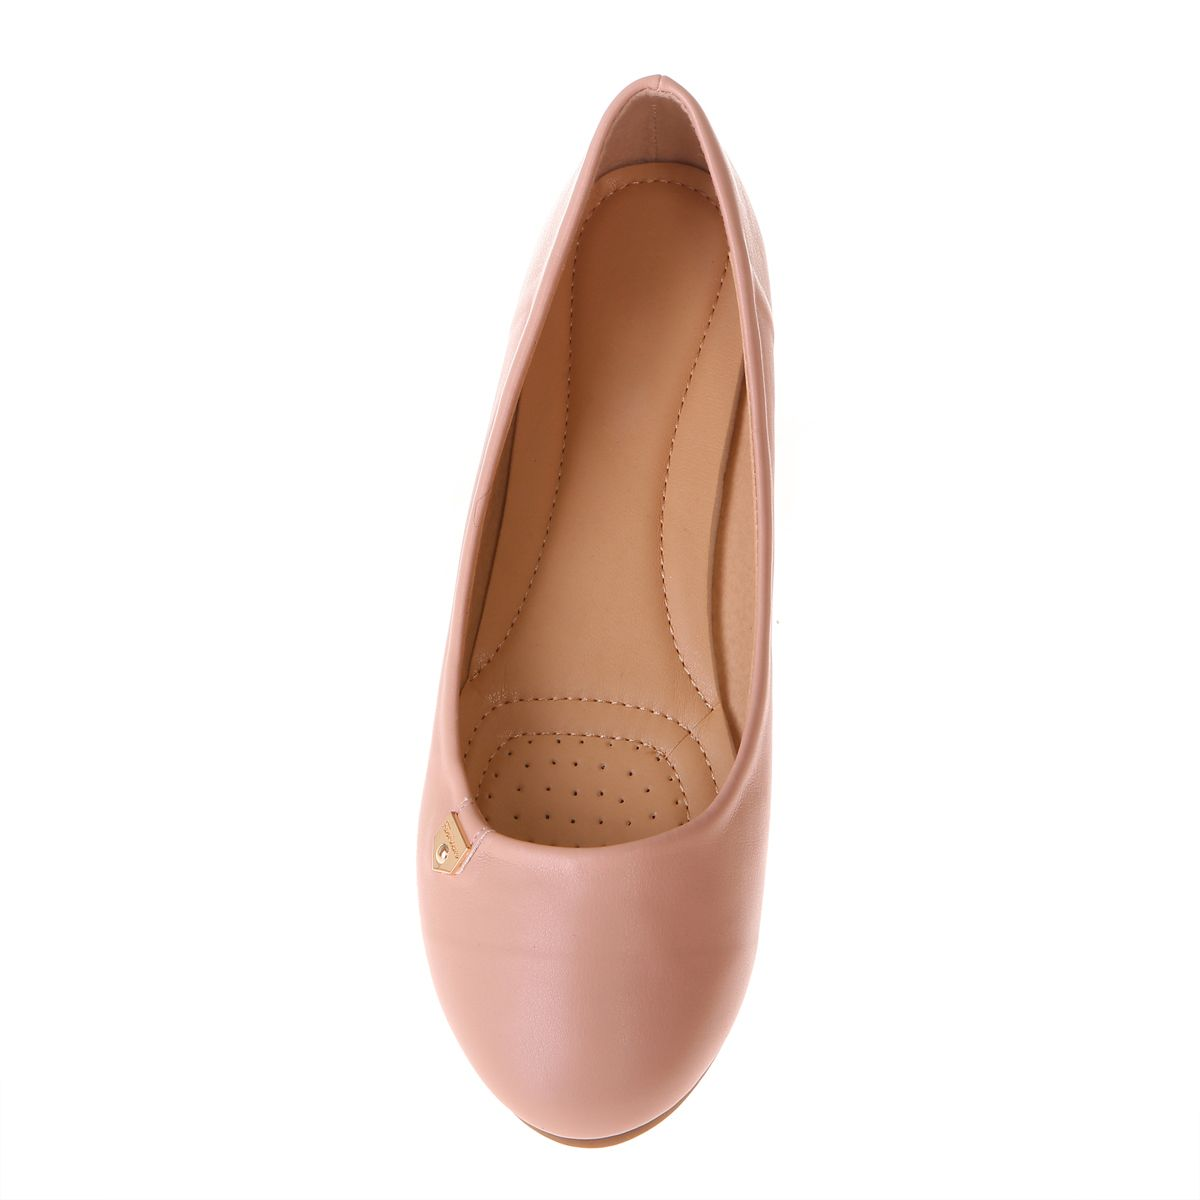 "Ballerines roses inscription ""fashion"" grandes tailles"